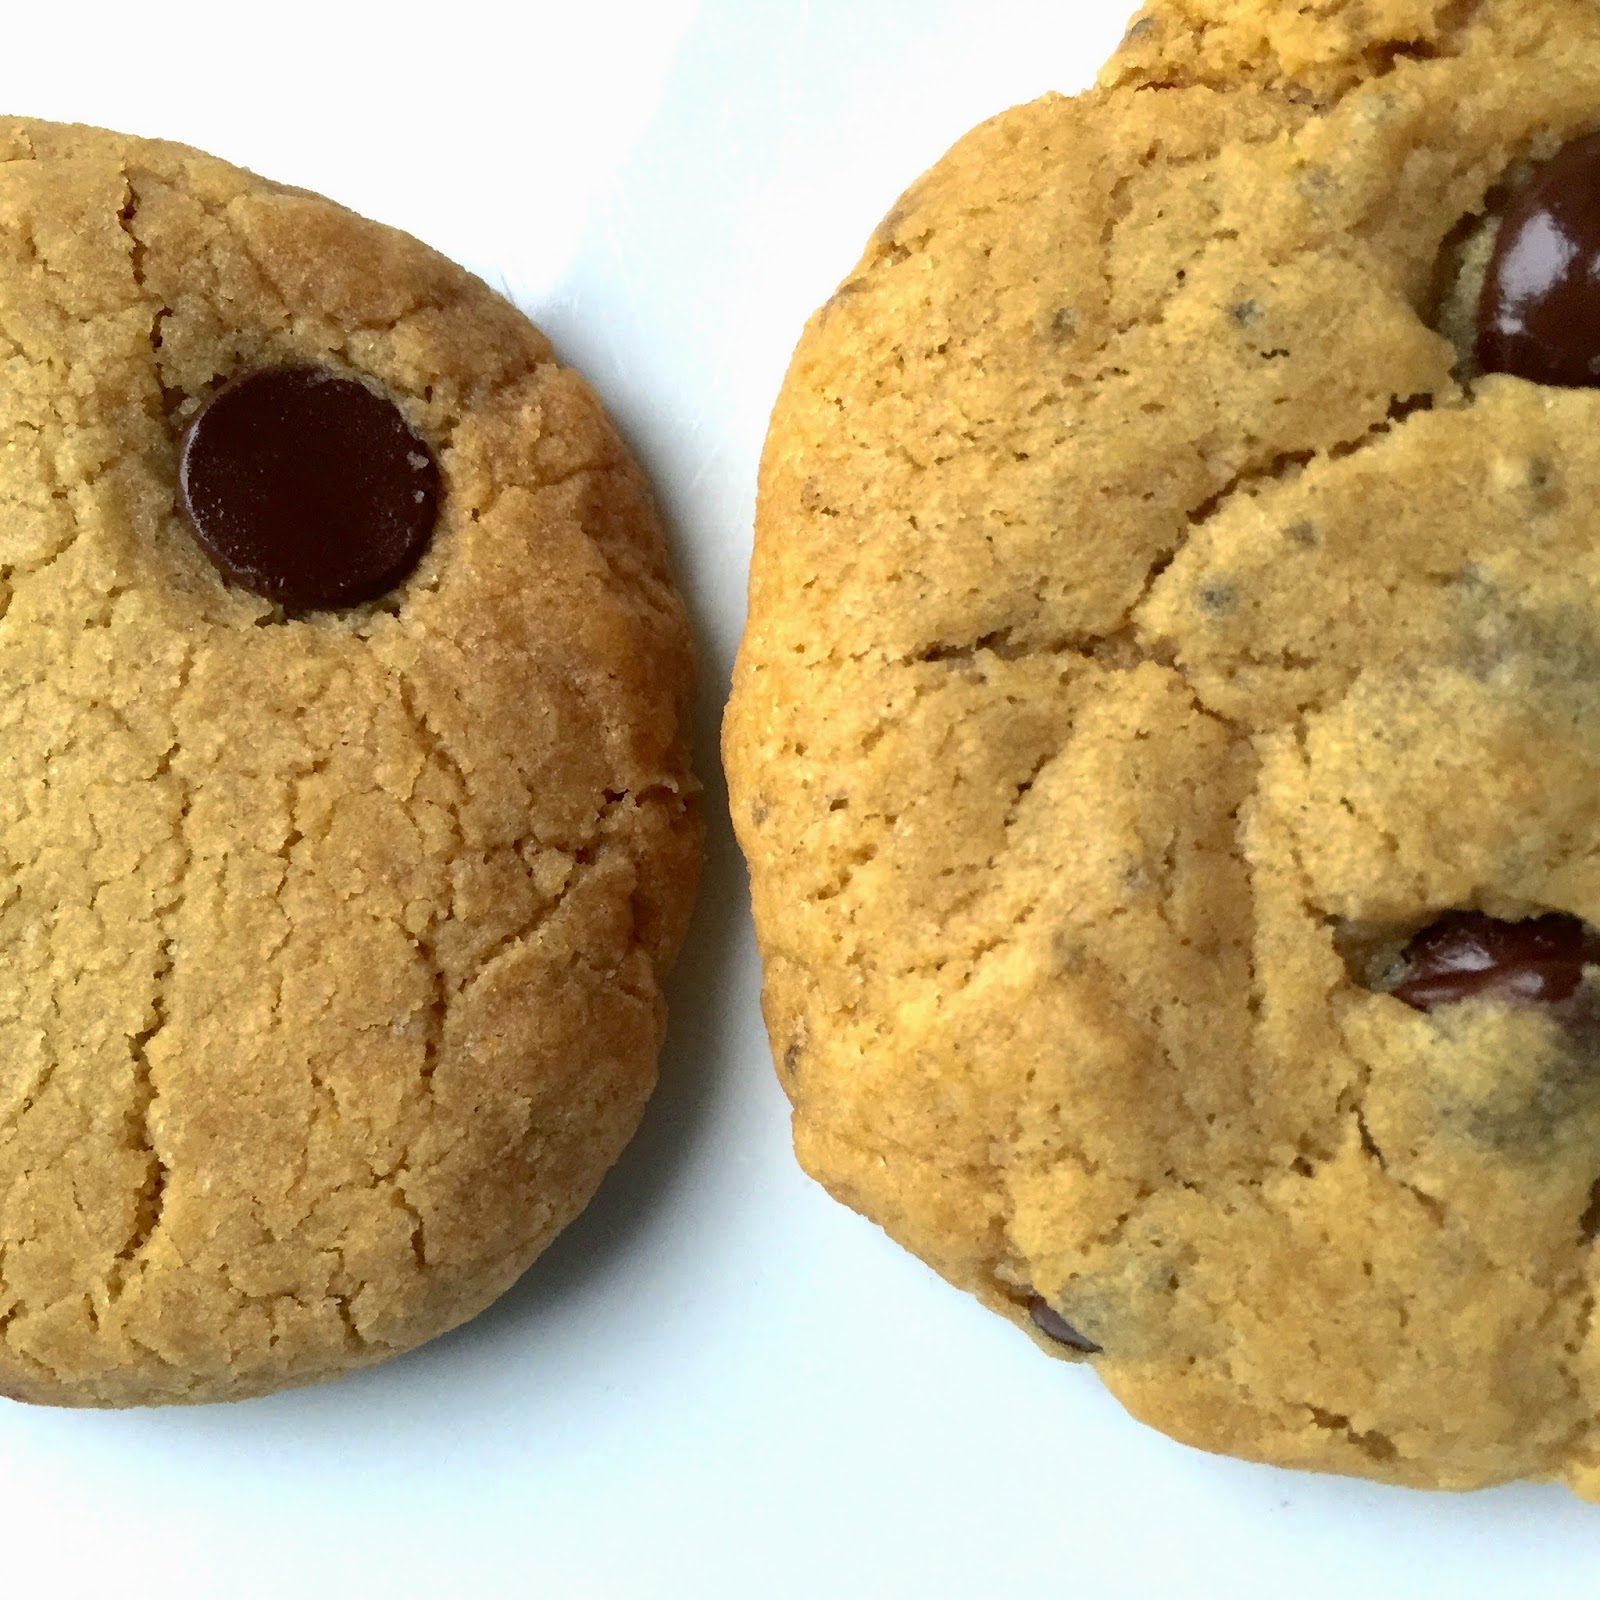 Gluten-free, egg-free, dairy-free chocolate chips cookies